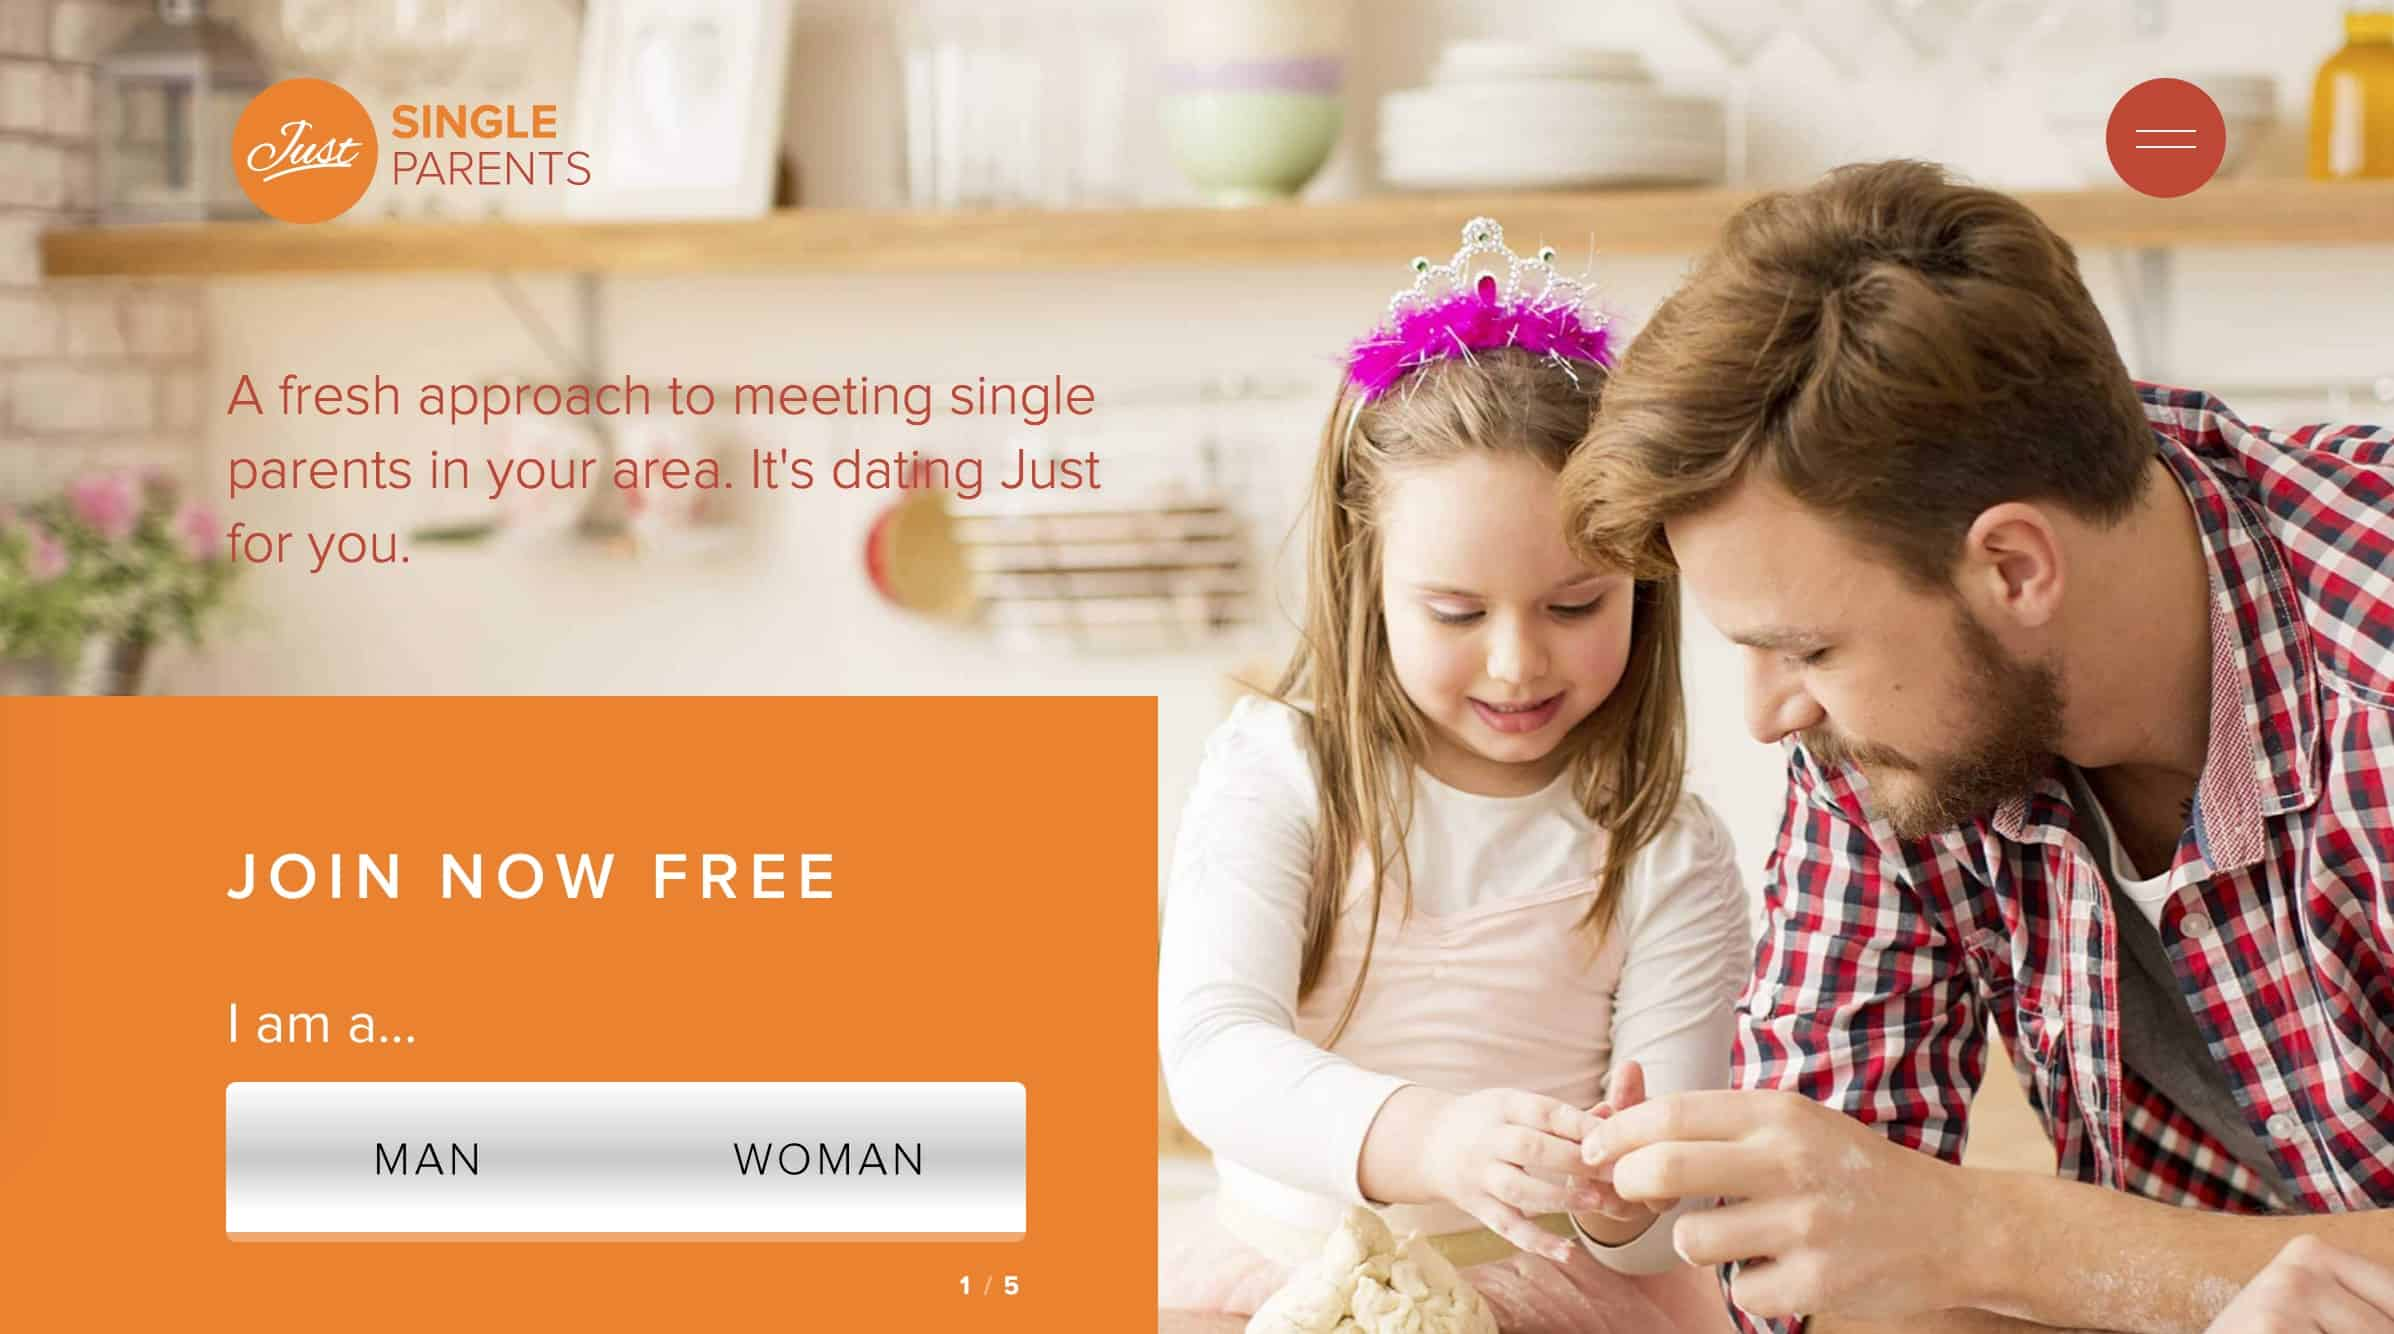 walstonburg single parent dating site Reviews of the best parents dating sites for single moms and dads here we rank the top 10 single parent dating sites for single dads and single moms.